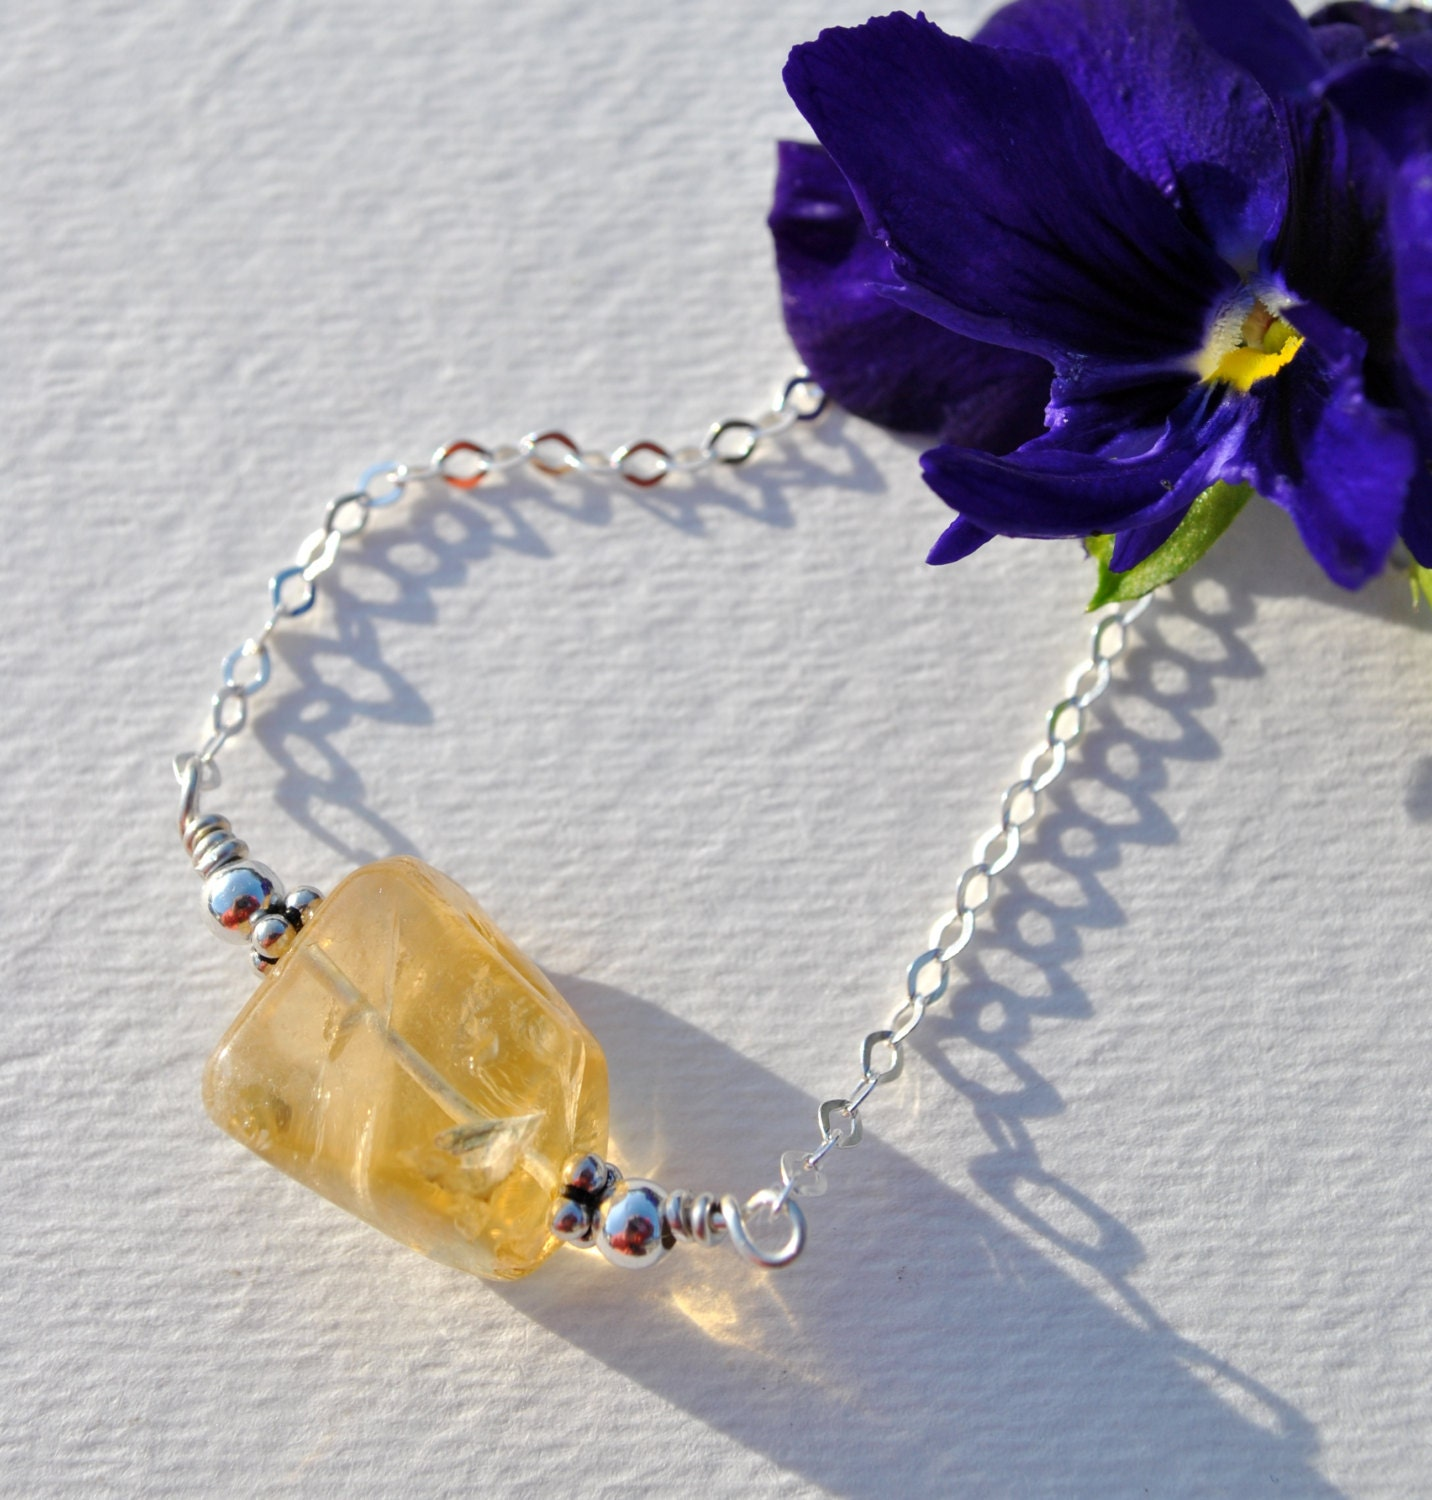 Yellow citrine freeform stone on Sterling Silver chain necklace  boho, minimalist, simple November birthstone - Beechtree